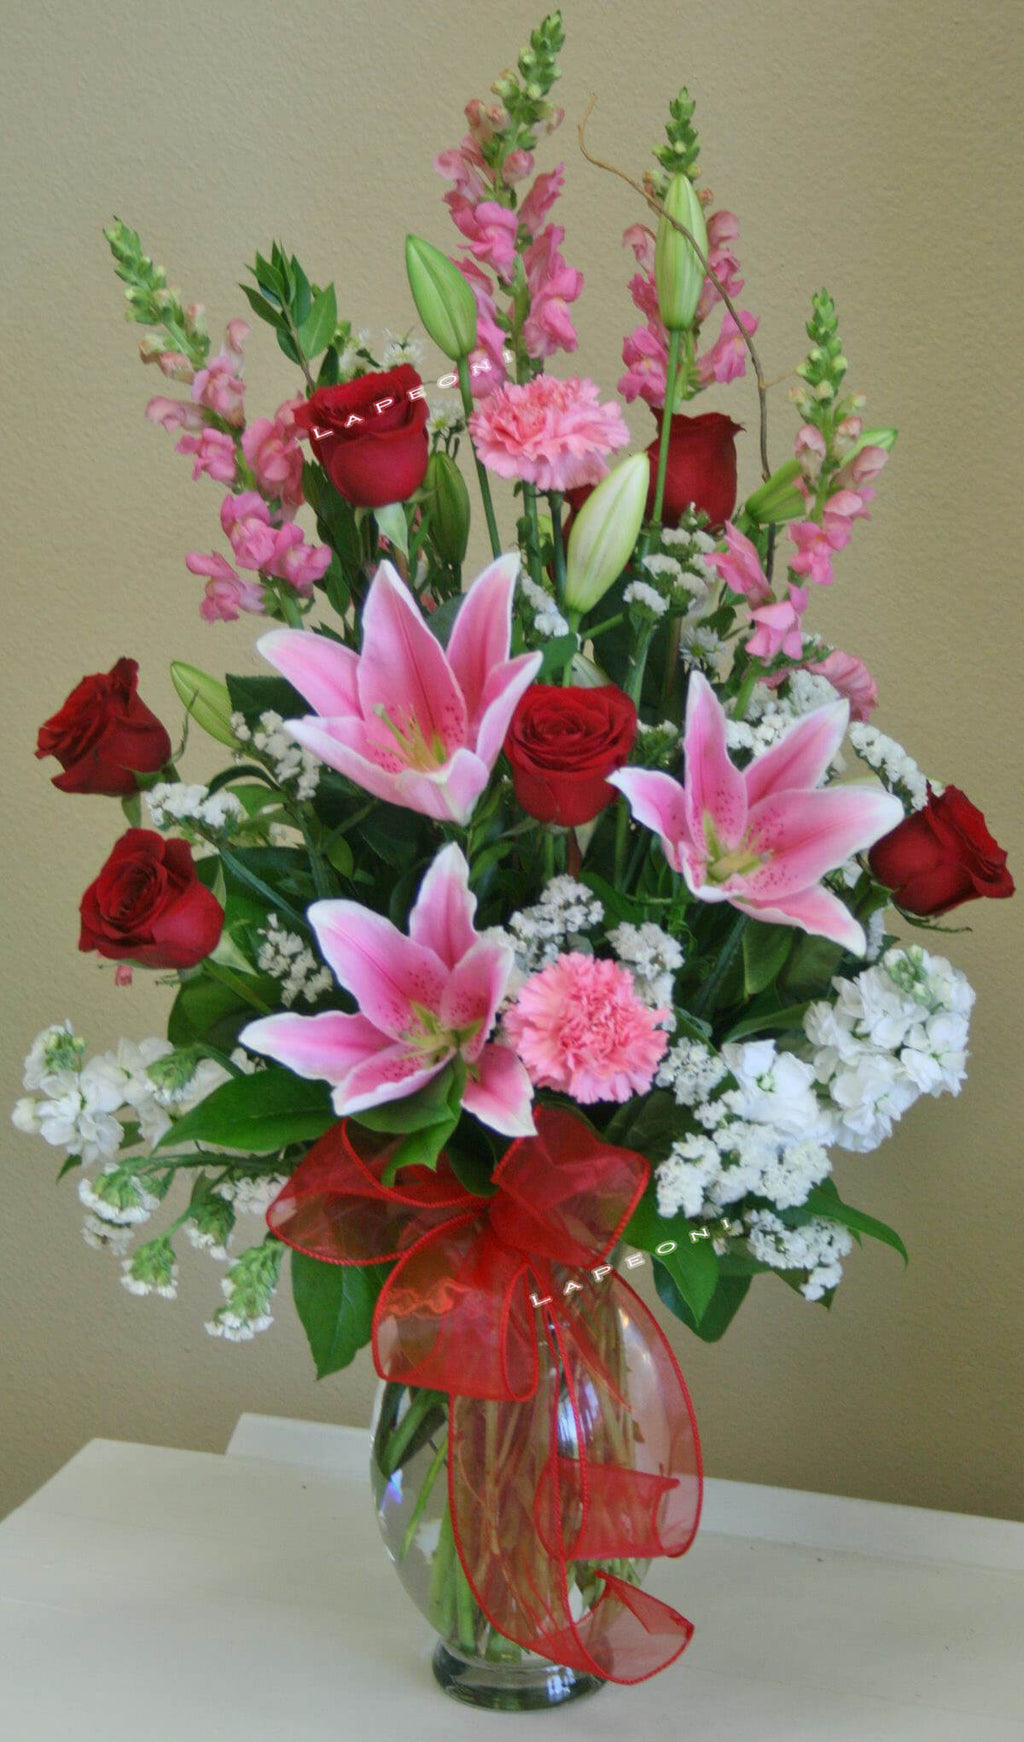 Appreciate - Lapeoni Flowers and Events